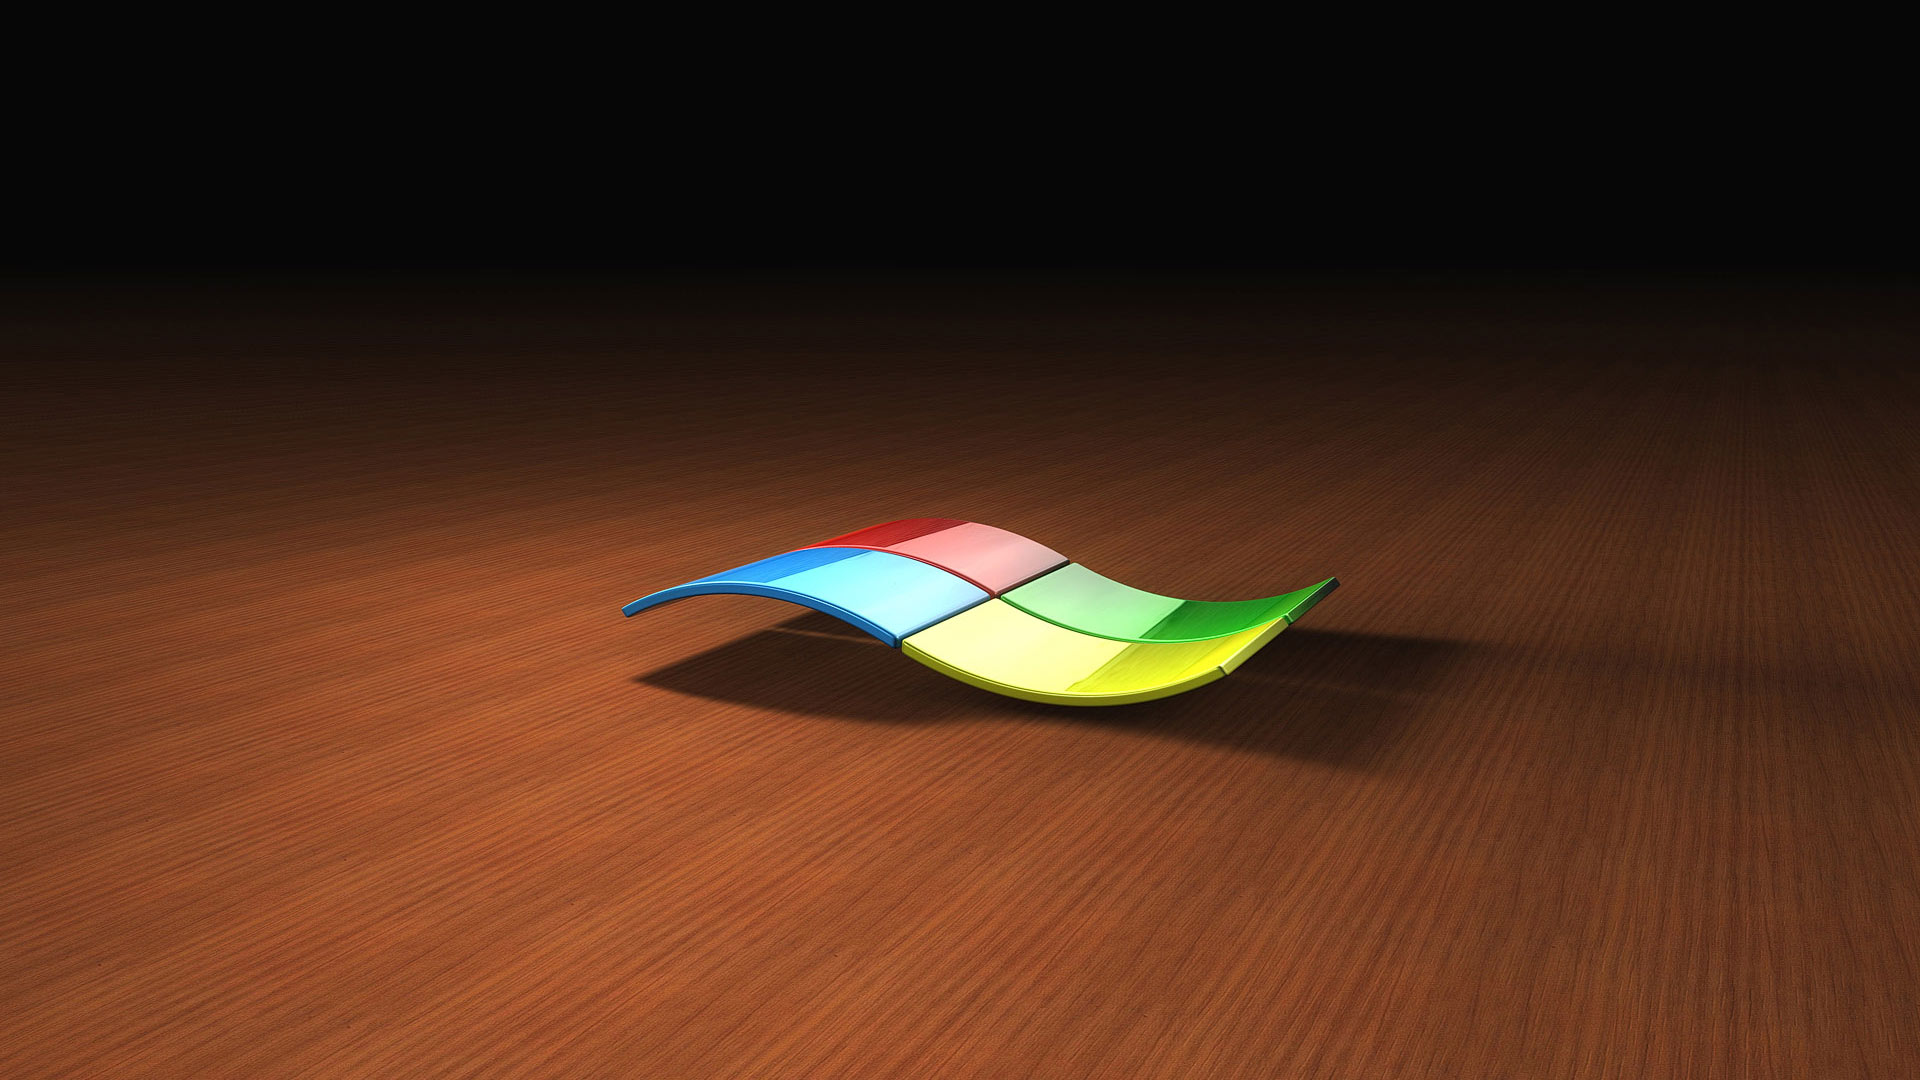 Desktop Wallpaper hd Windows 7 Soar and make this wallpaper for your 1920x1080